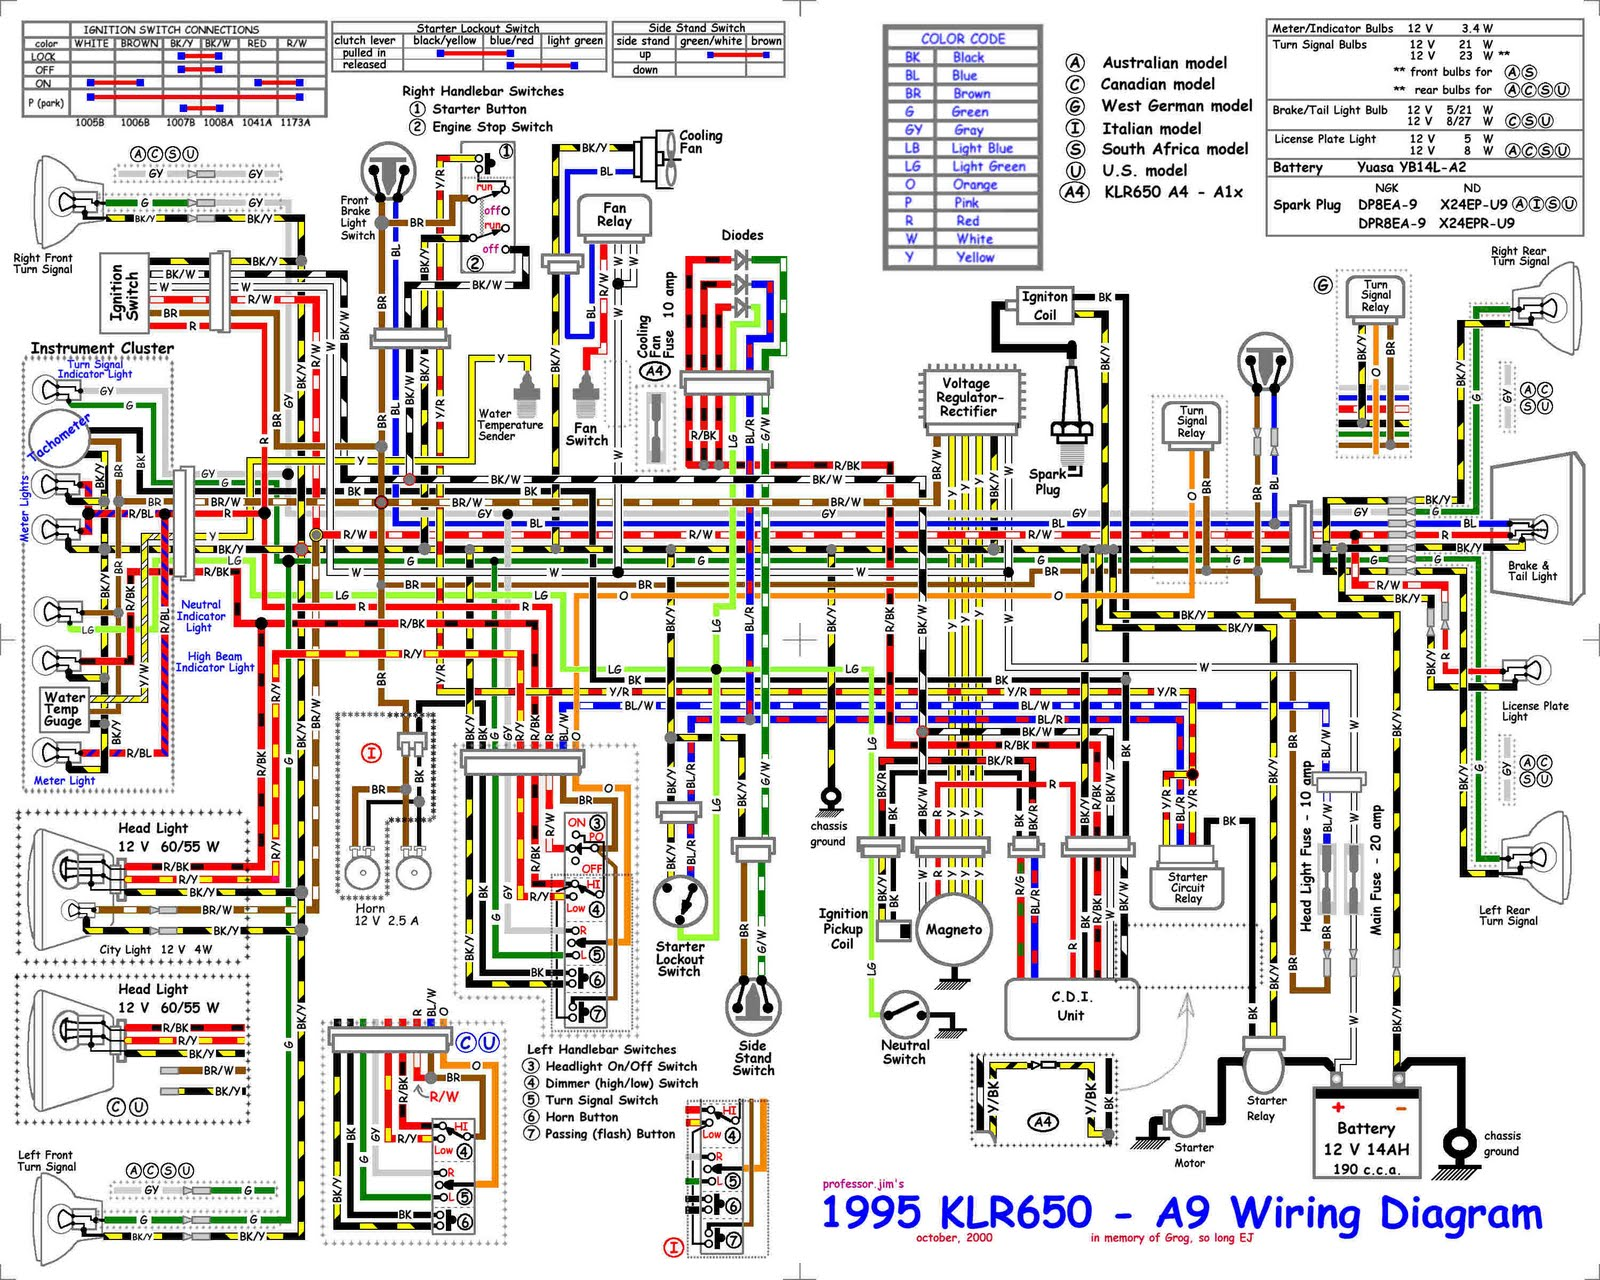 1974 Chevrolet Monte Carlo Wiring on 97 explorer radio wiring diagram